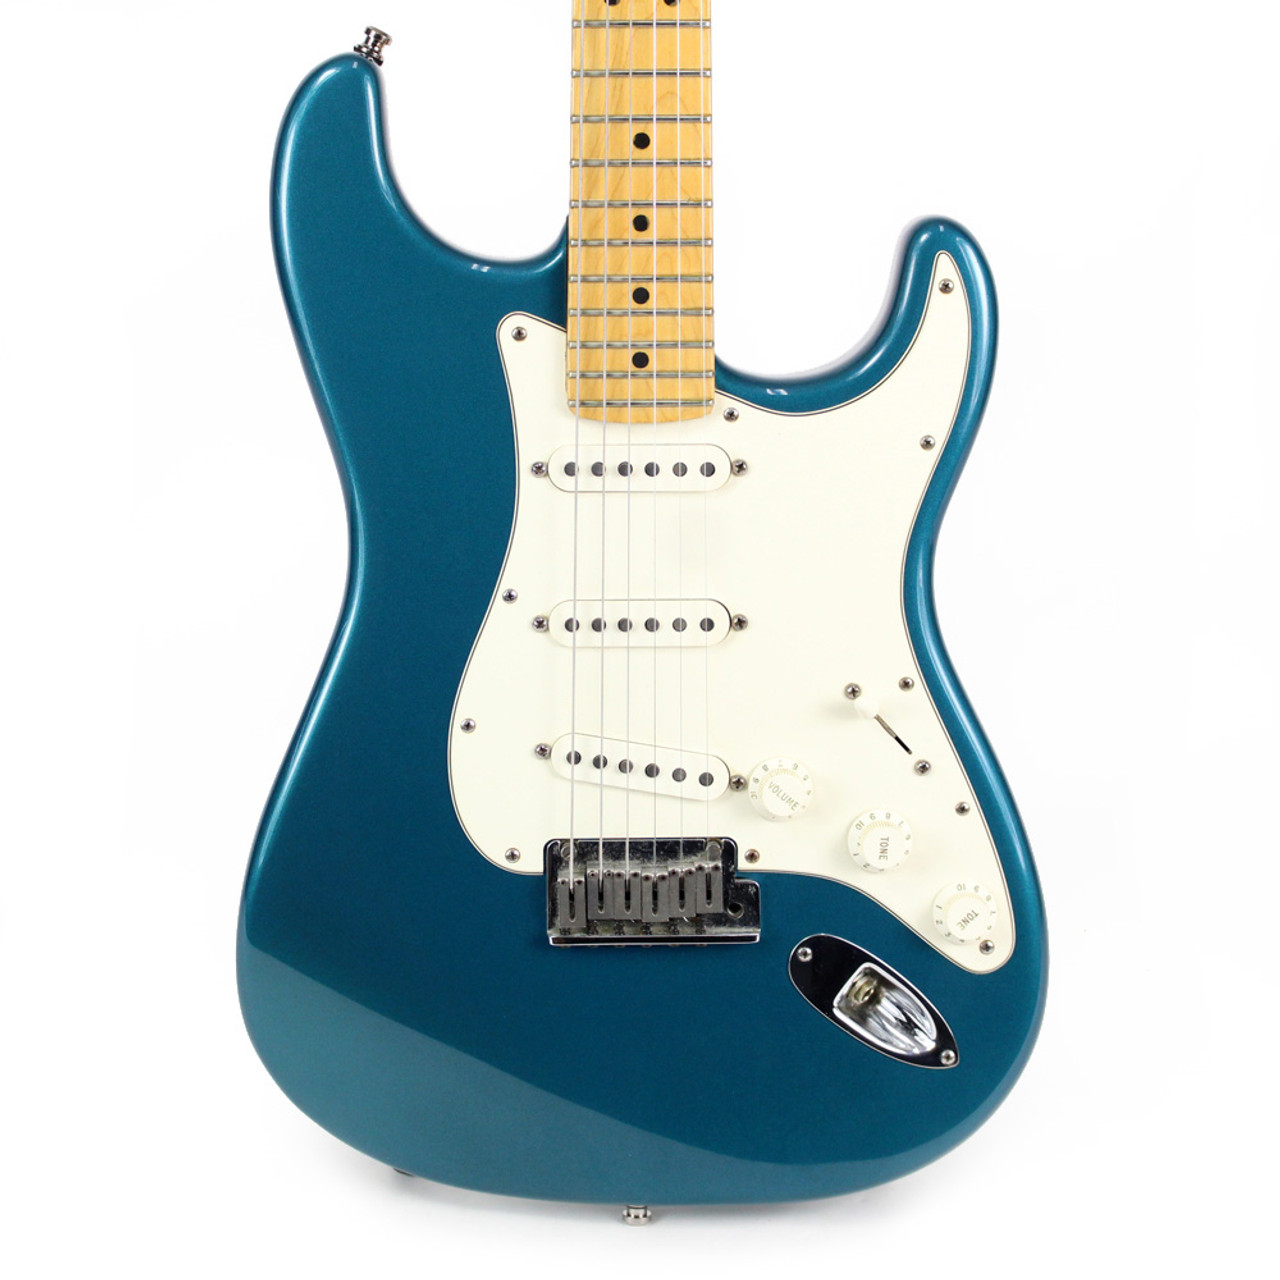 used 2000 fender american standard stratocaster electric guitar in teal blue cream city music. Black Bedroom Furniture Sets. Home Design Ideas